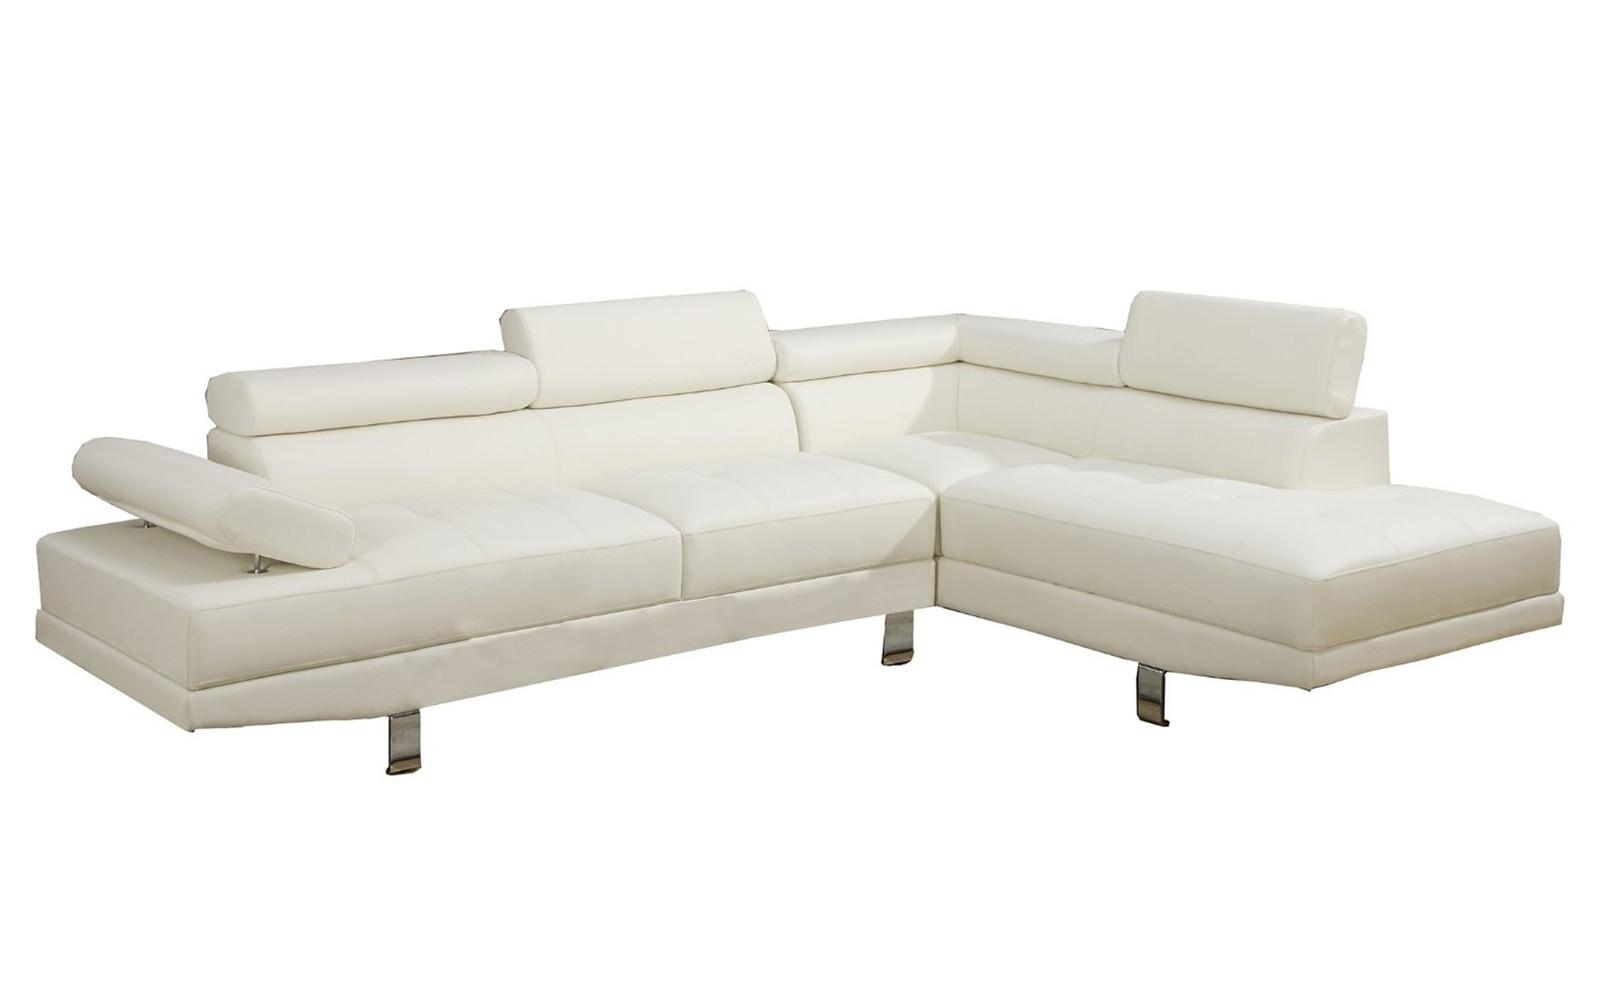 2 Piece Modern Bonded Leather Right Facing Chaise Sectional Sofa throughout Sectional Sofa With 2 Chaises